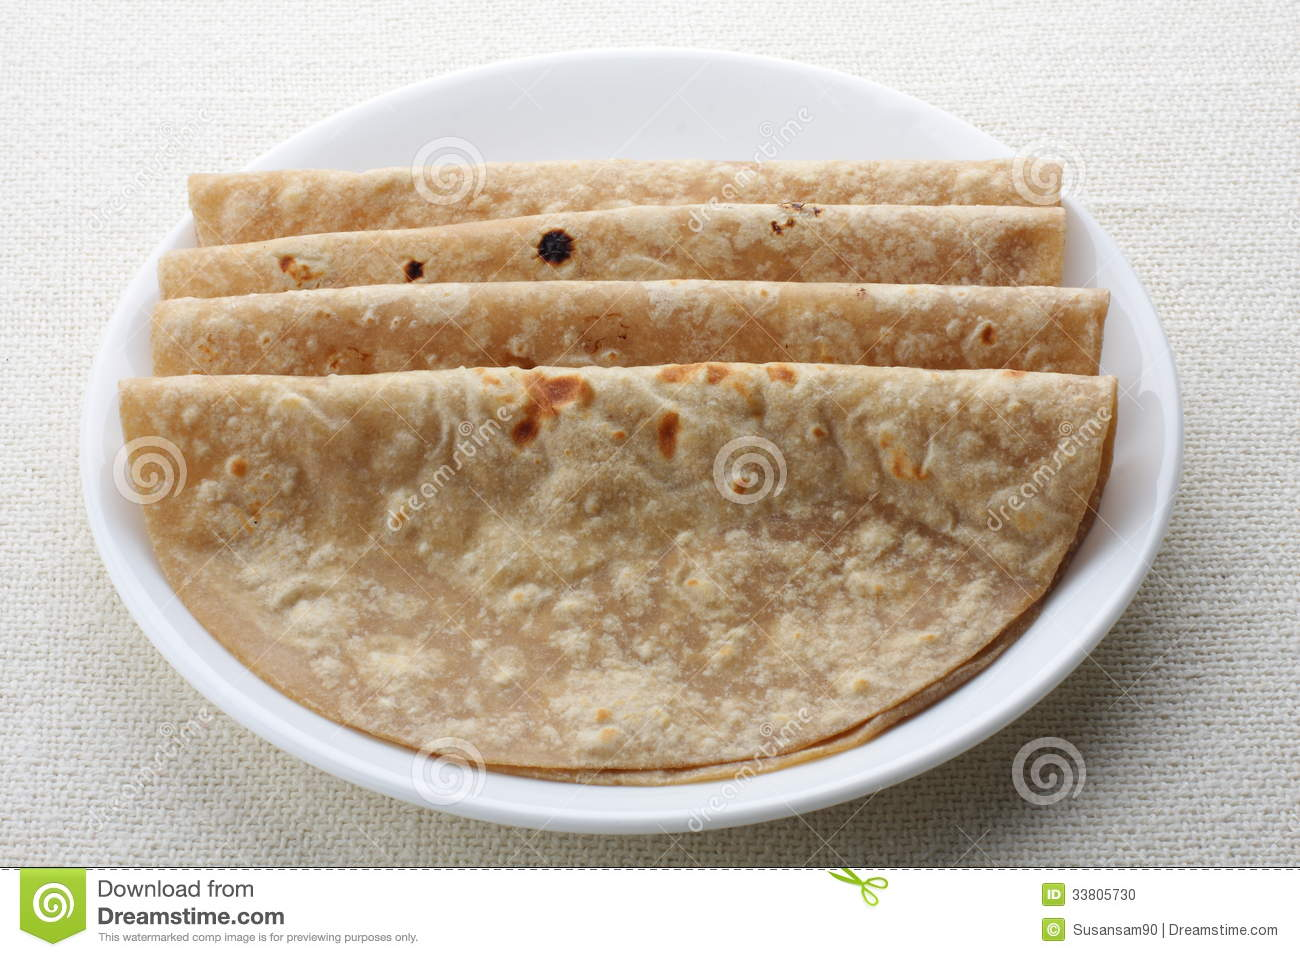 chapati-indian-flat-bread-chapathi-served-palte-33805730.jpg